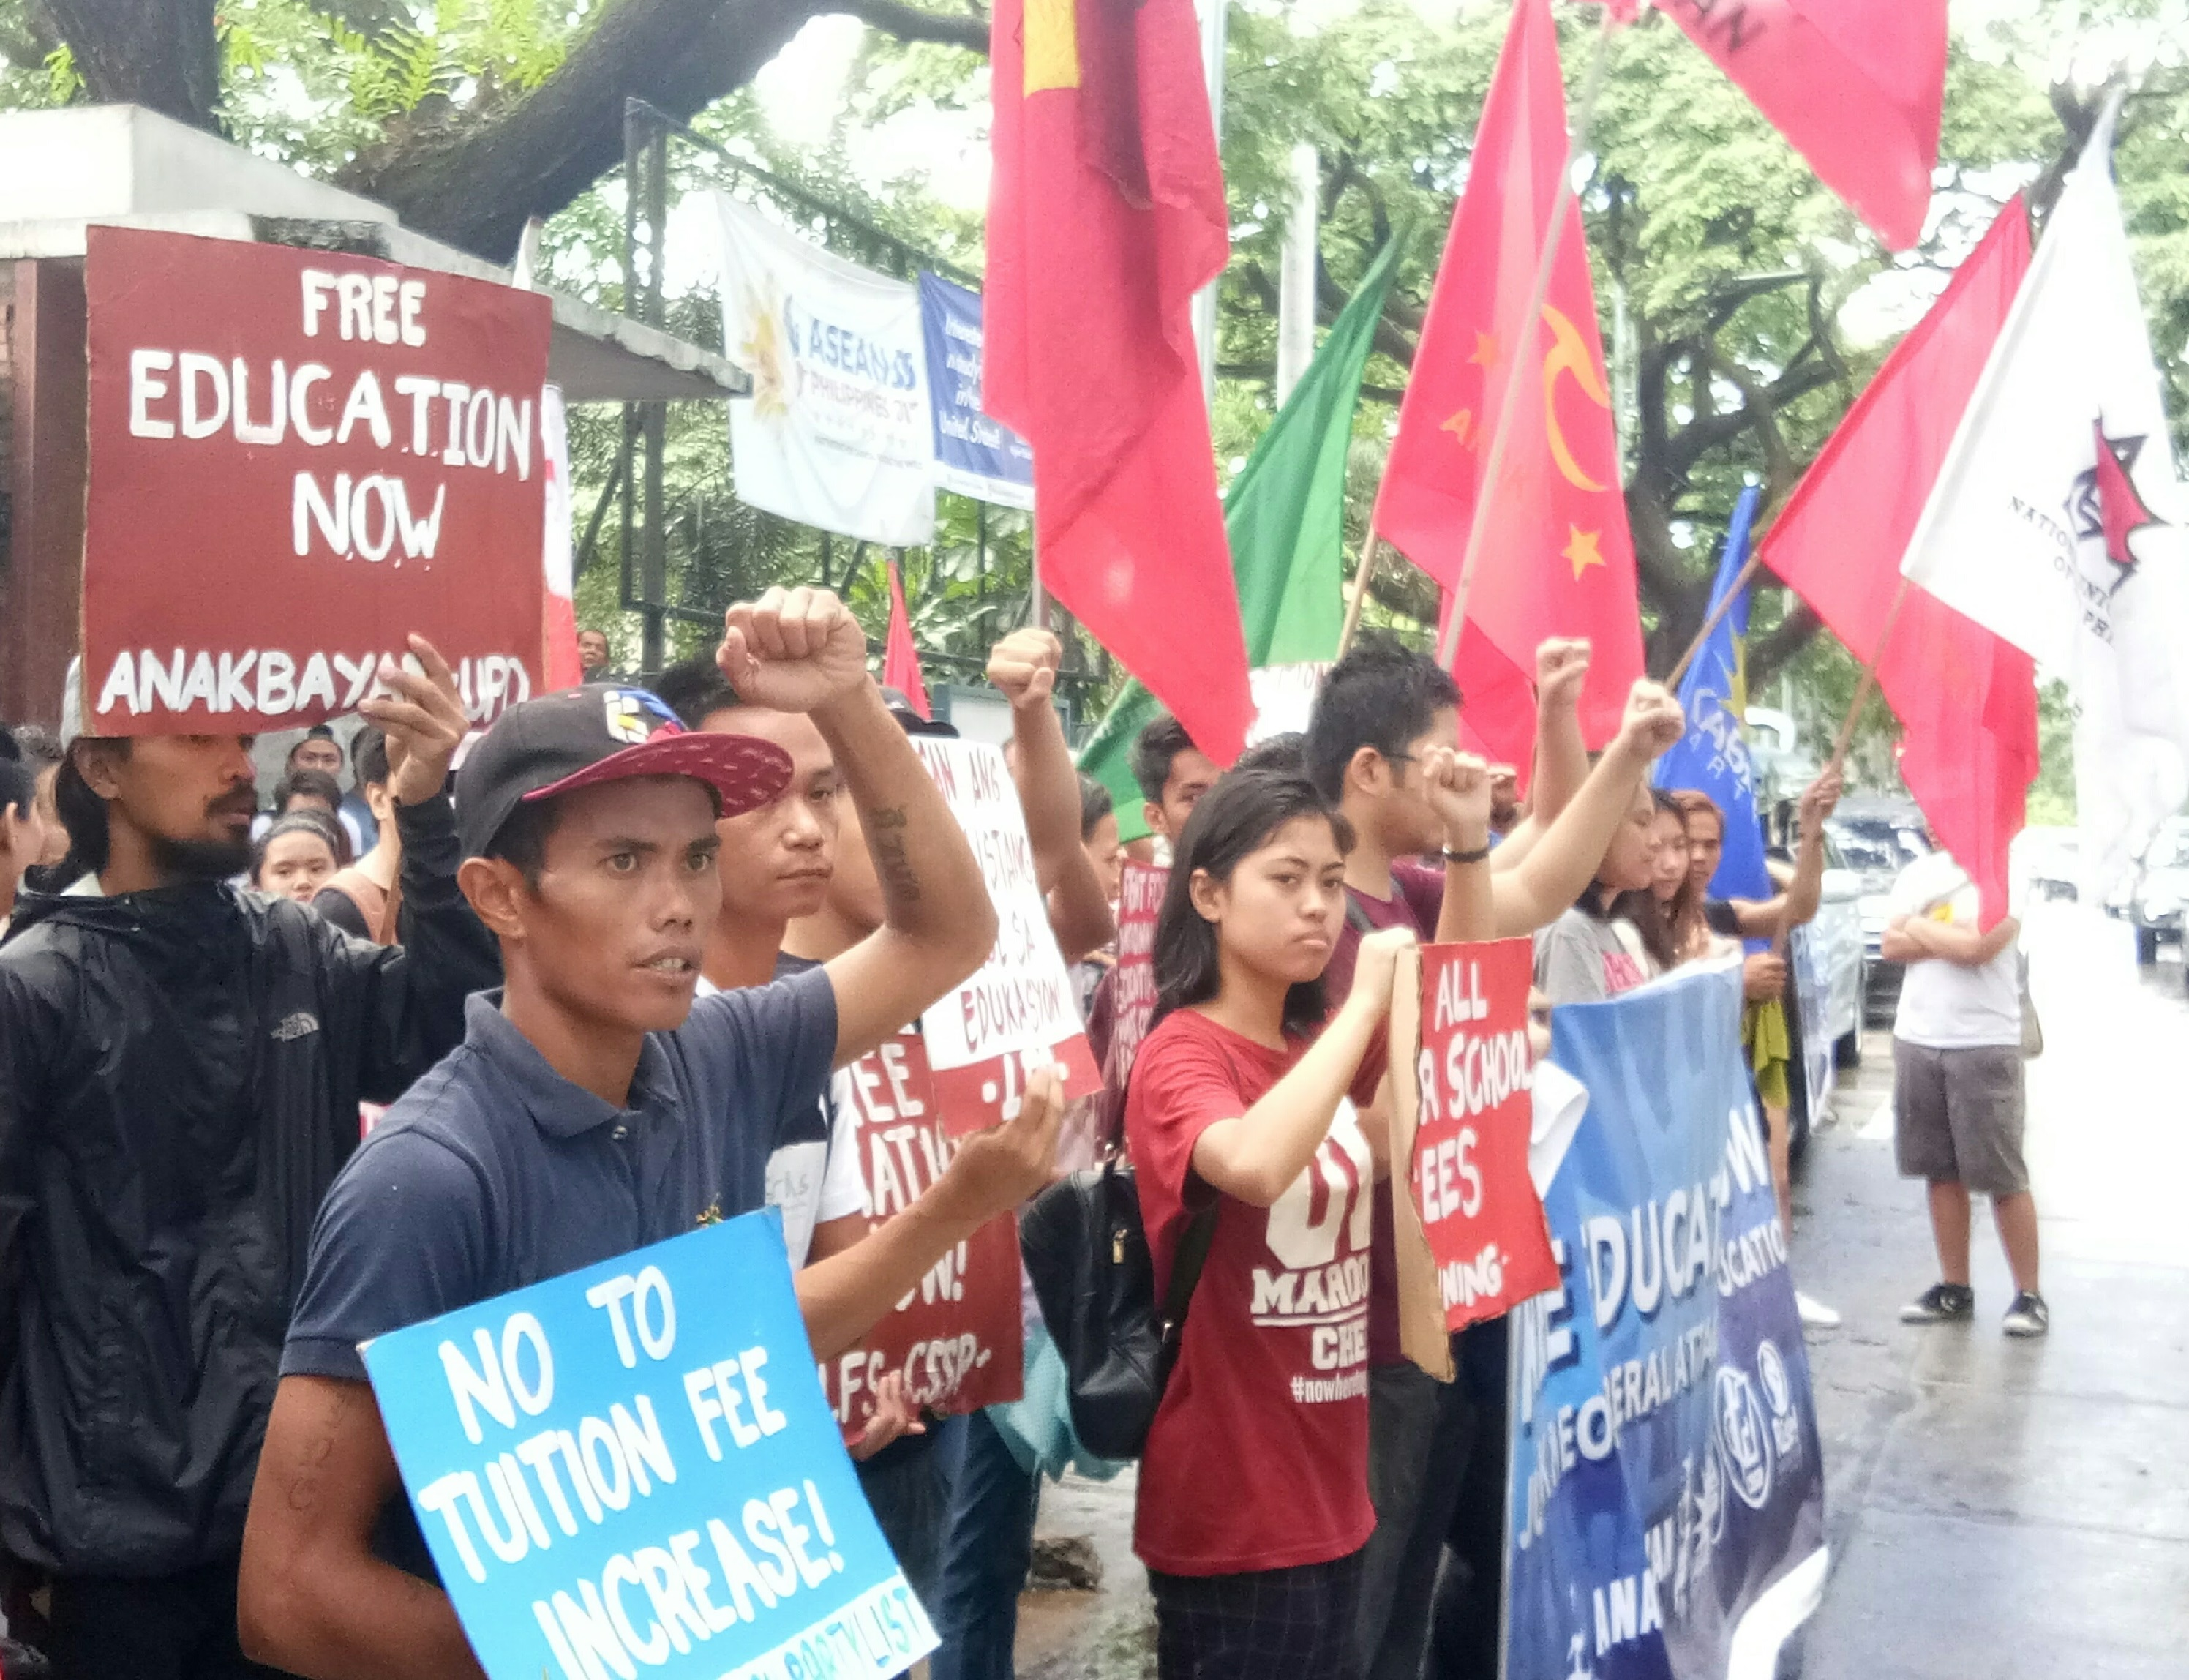 Protesting students at the Ched gate in Diliman, Quezon City (Photo by Daniel Boone/Bulatlat)